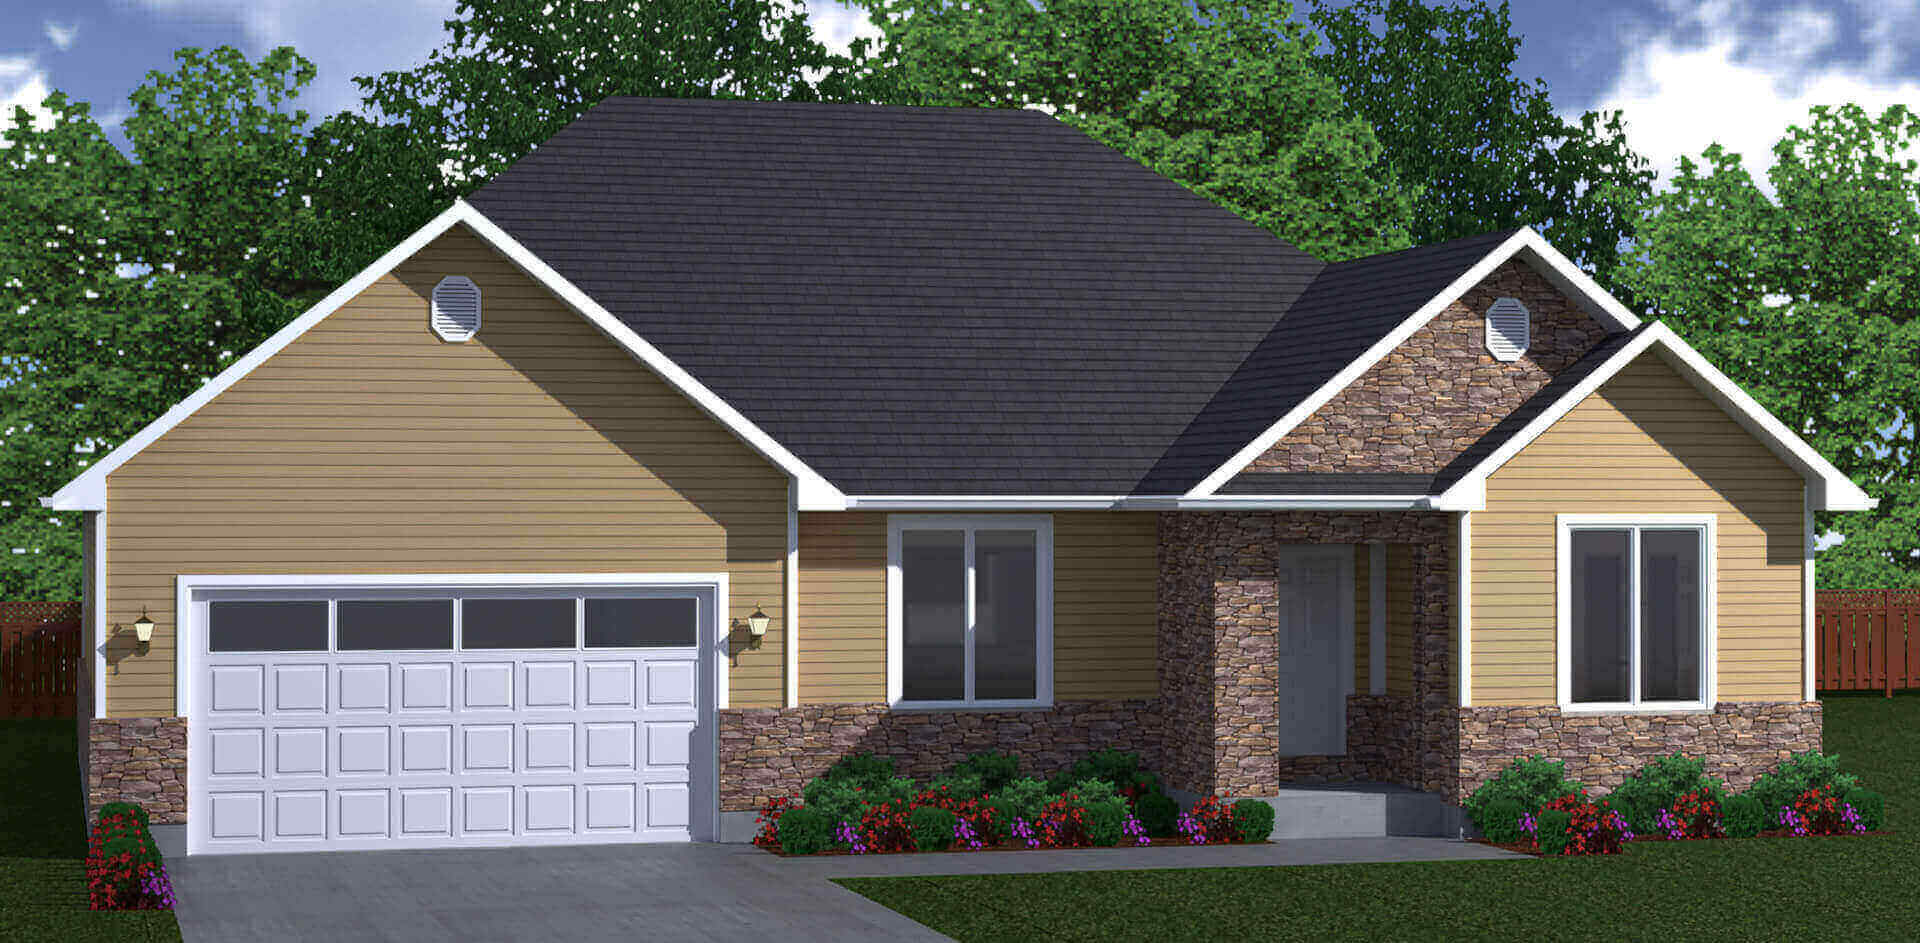 1851 sq.ft. timber mart house 3 bed 2 bath exterior render